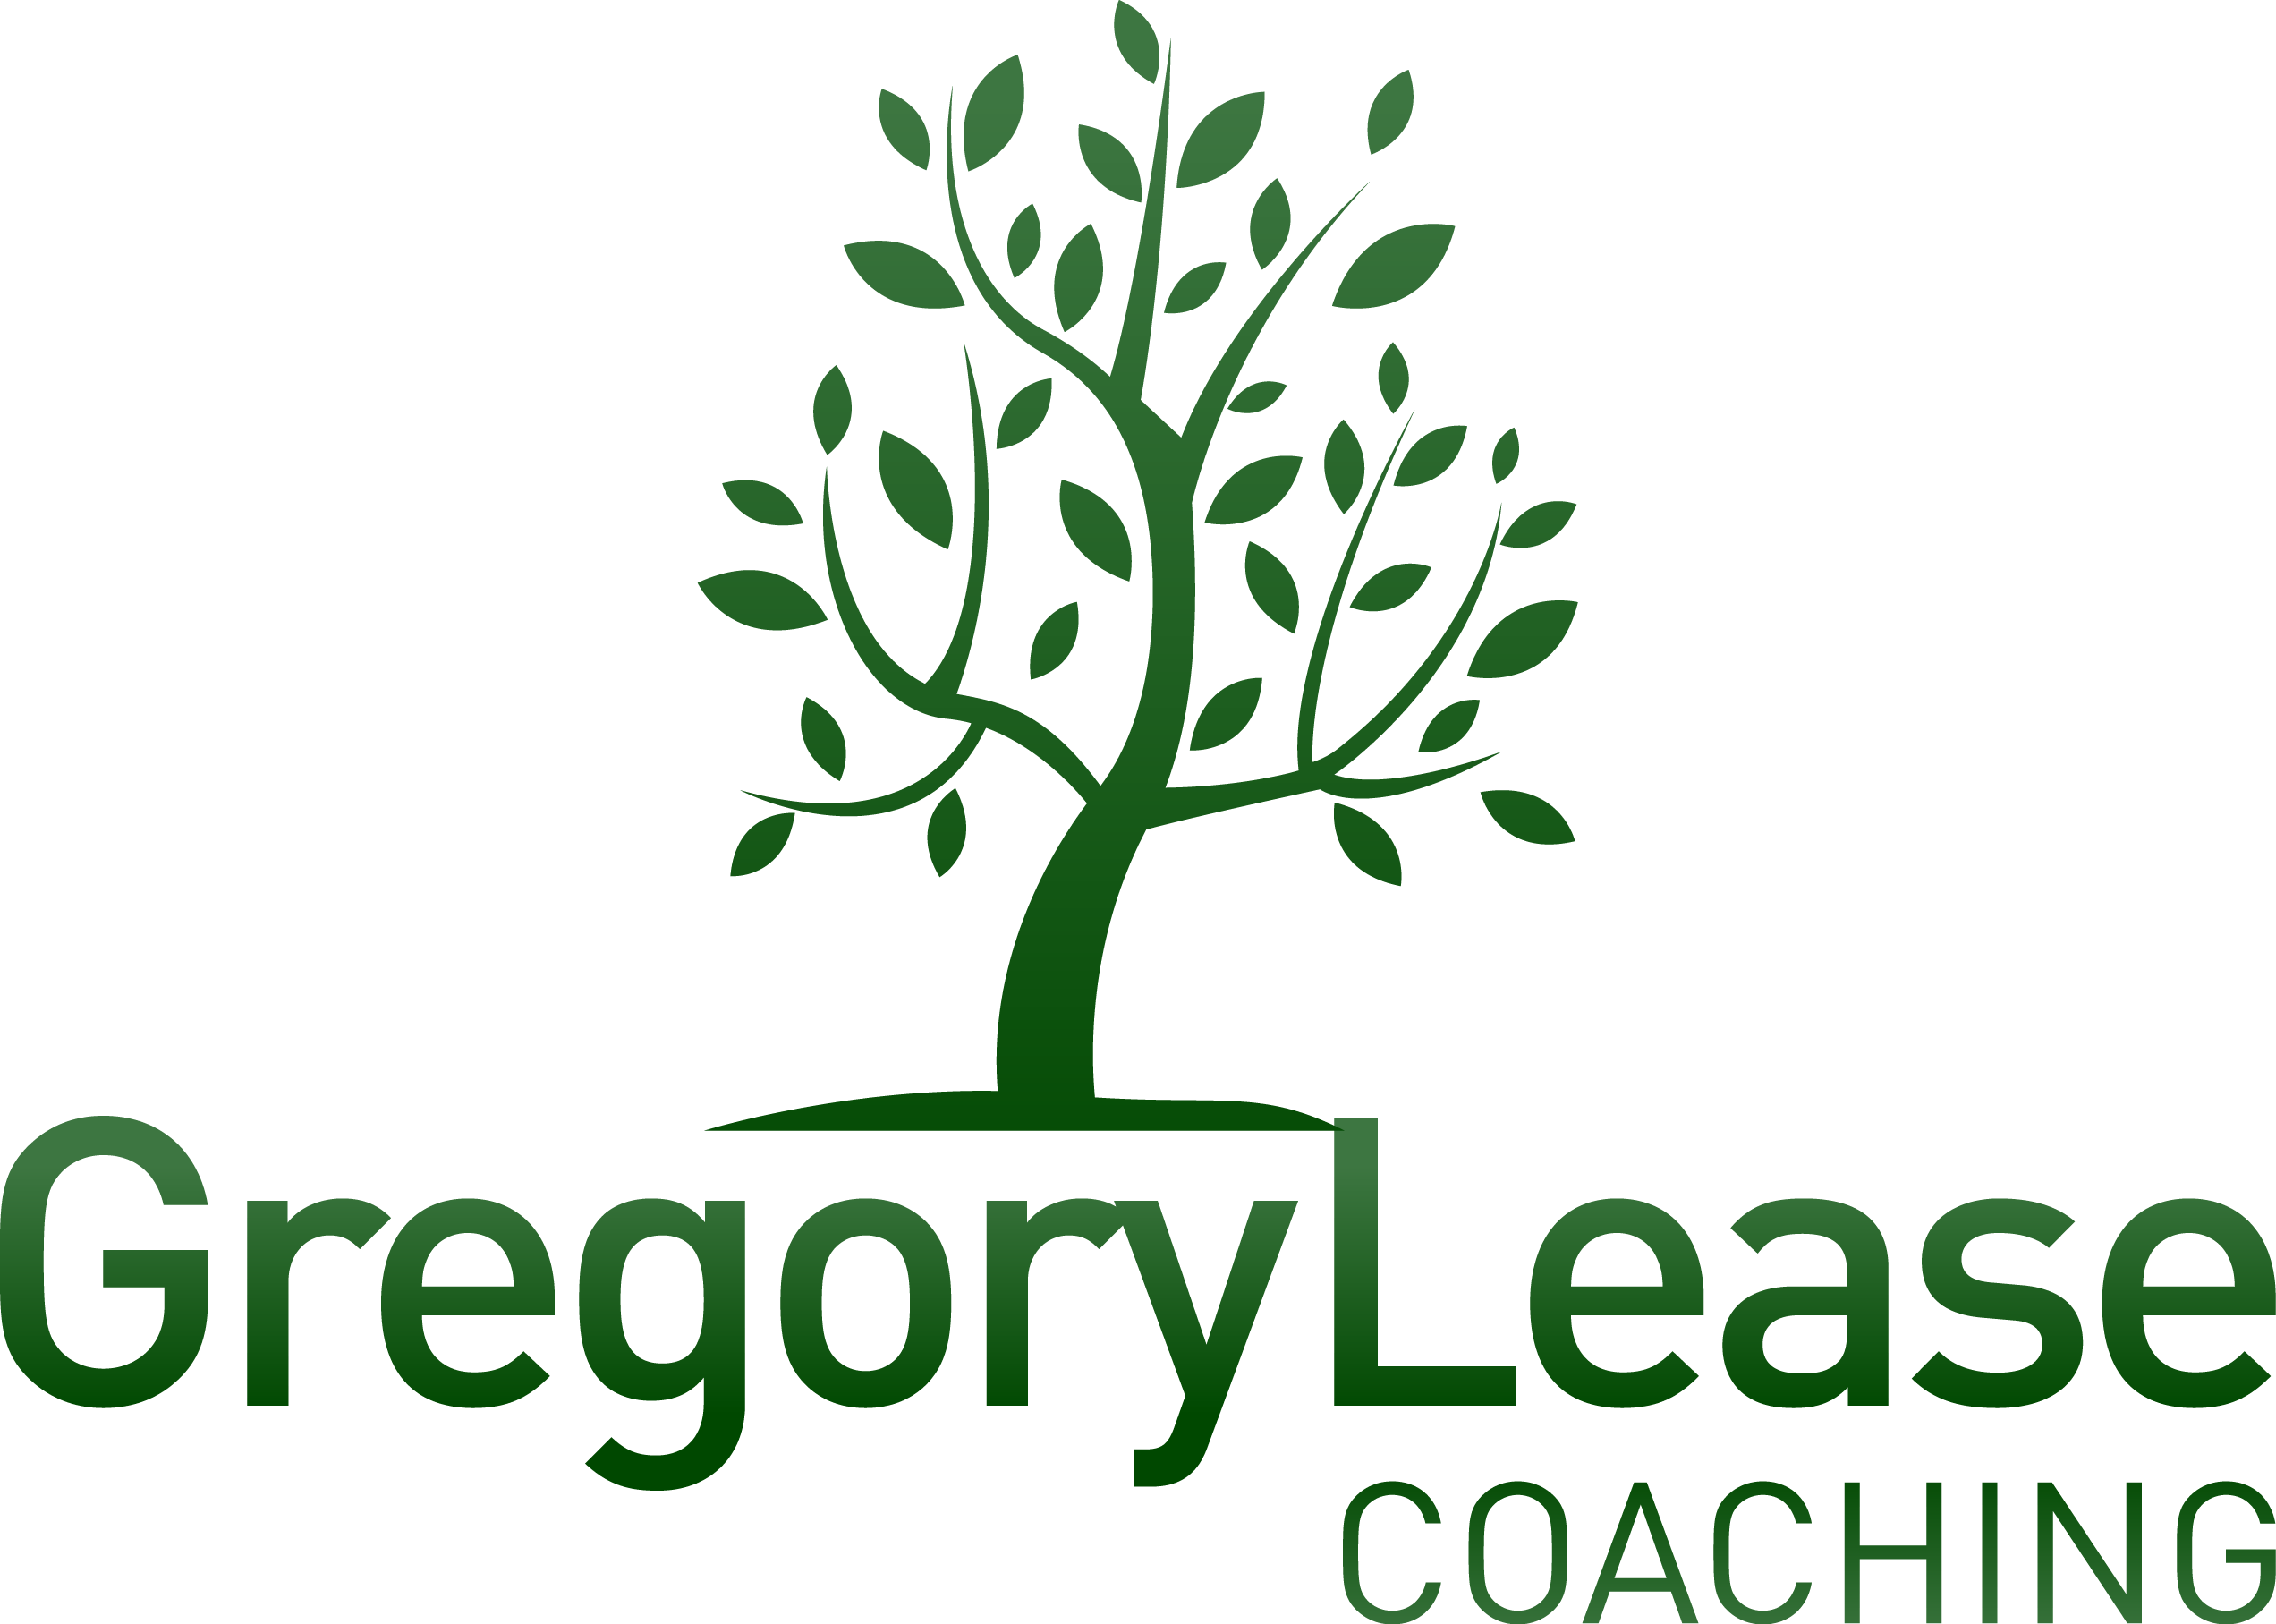 Gregory Lease Coaching Logo